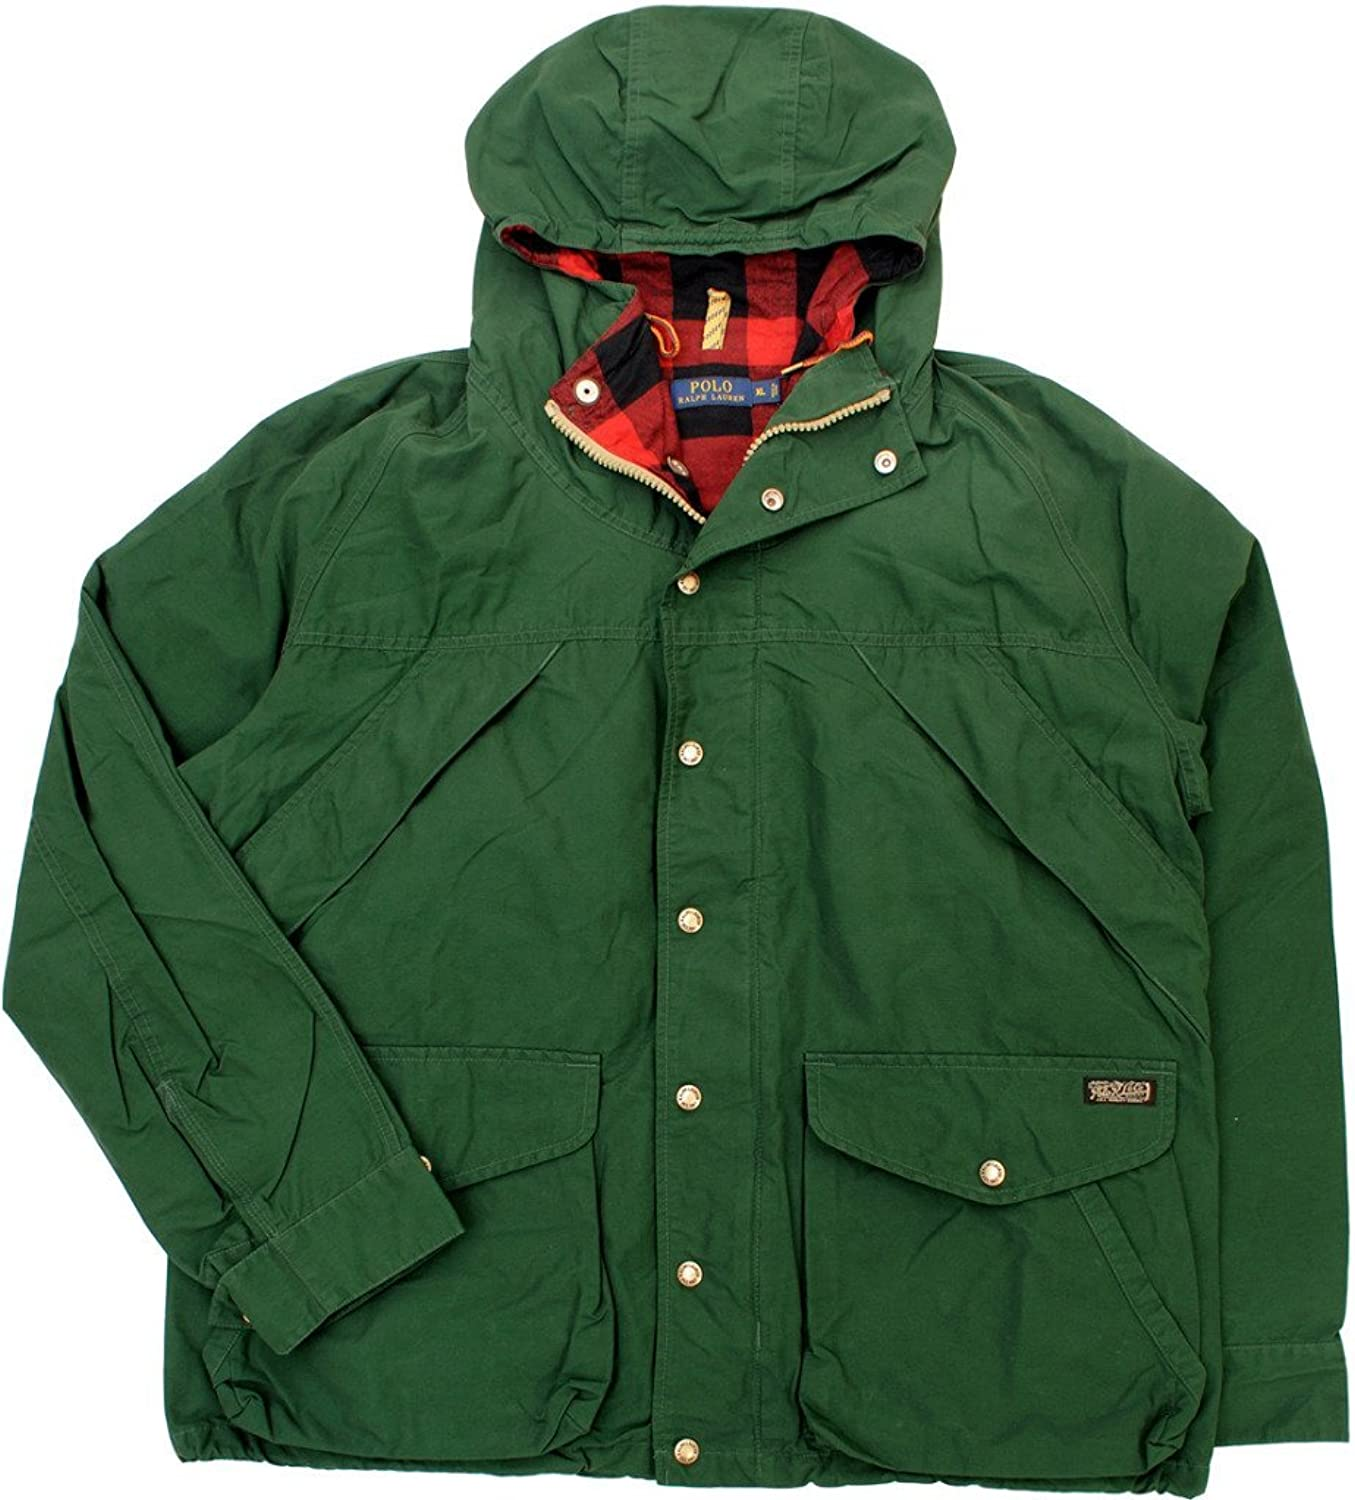 Polo Ralph Lauren Men\u0027s Foster Falls Hooded Jacket, Norhtwest Pine, XL at  Amazon Men\u0027s Clothing store: